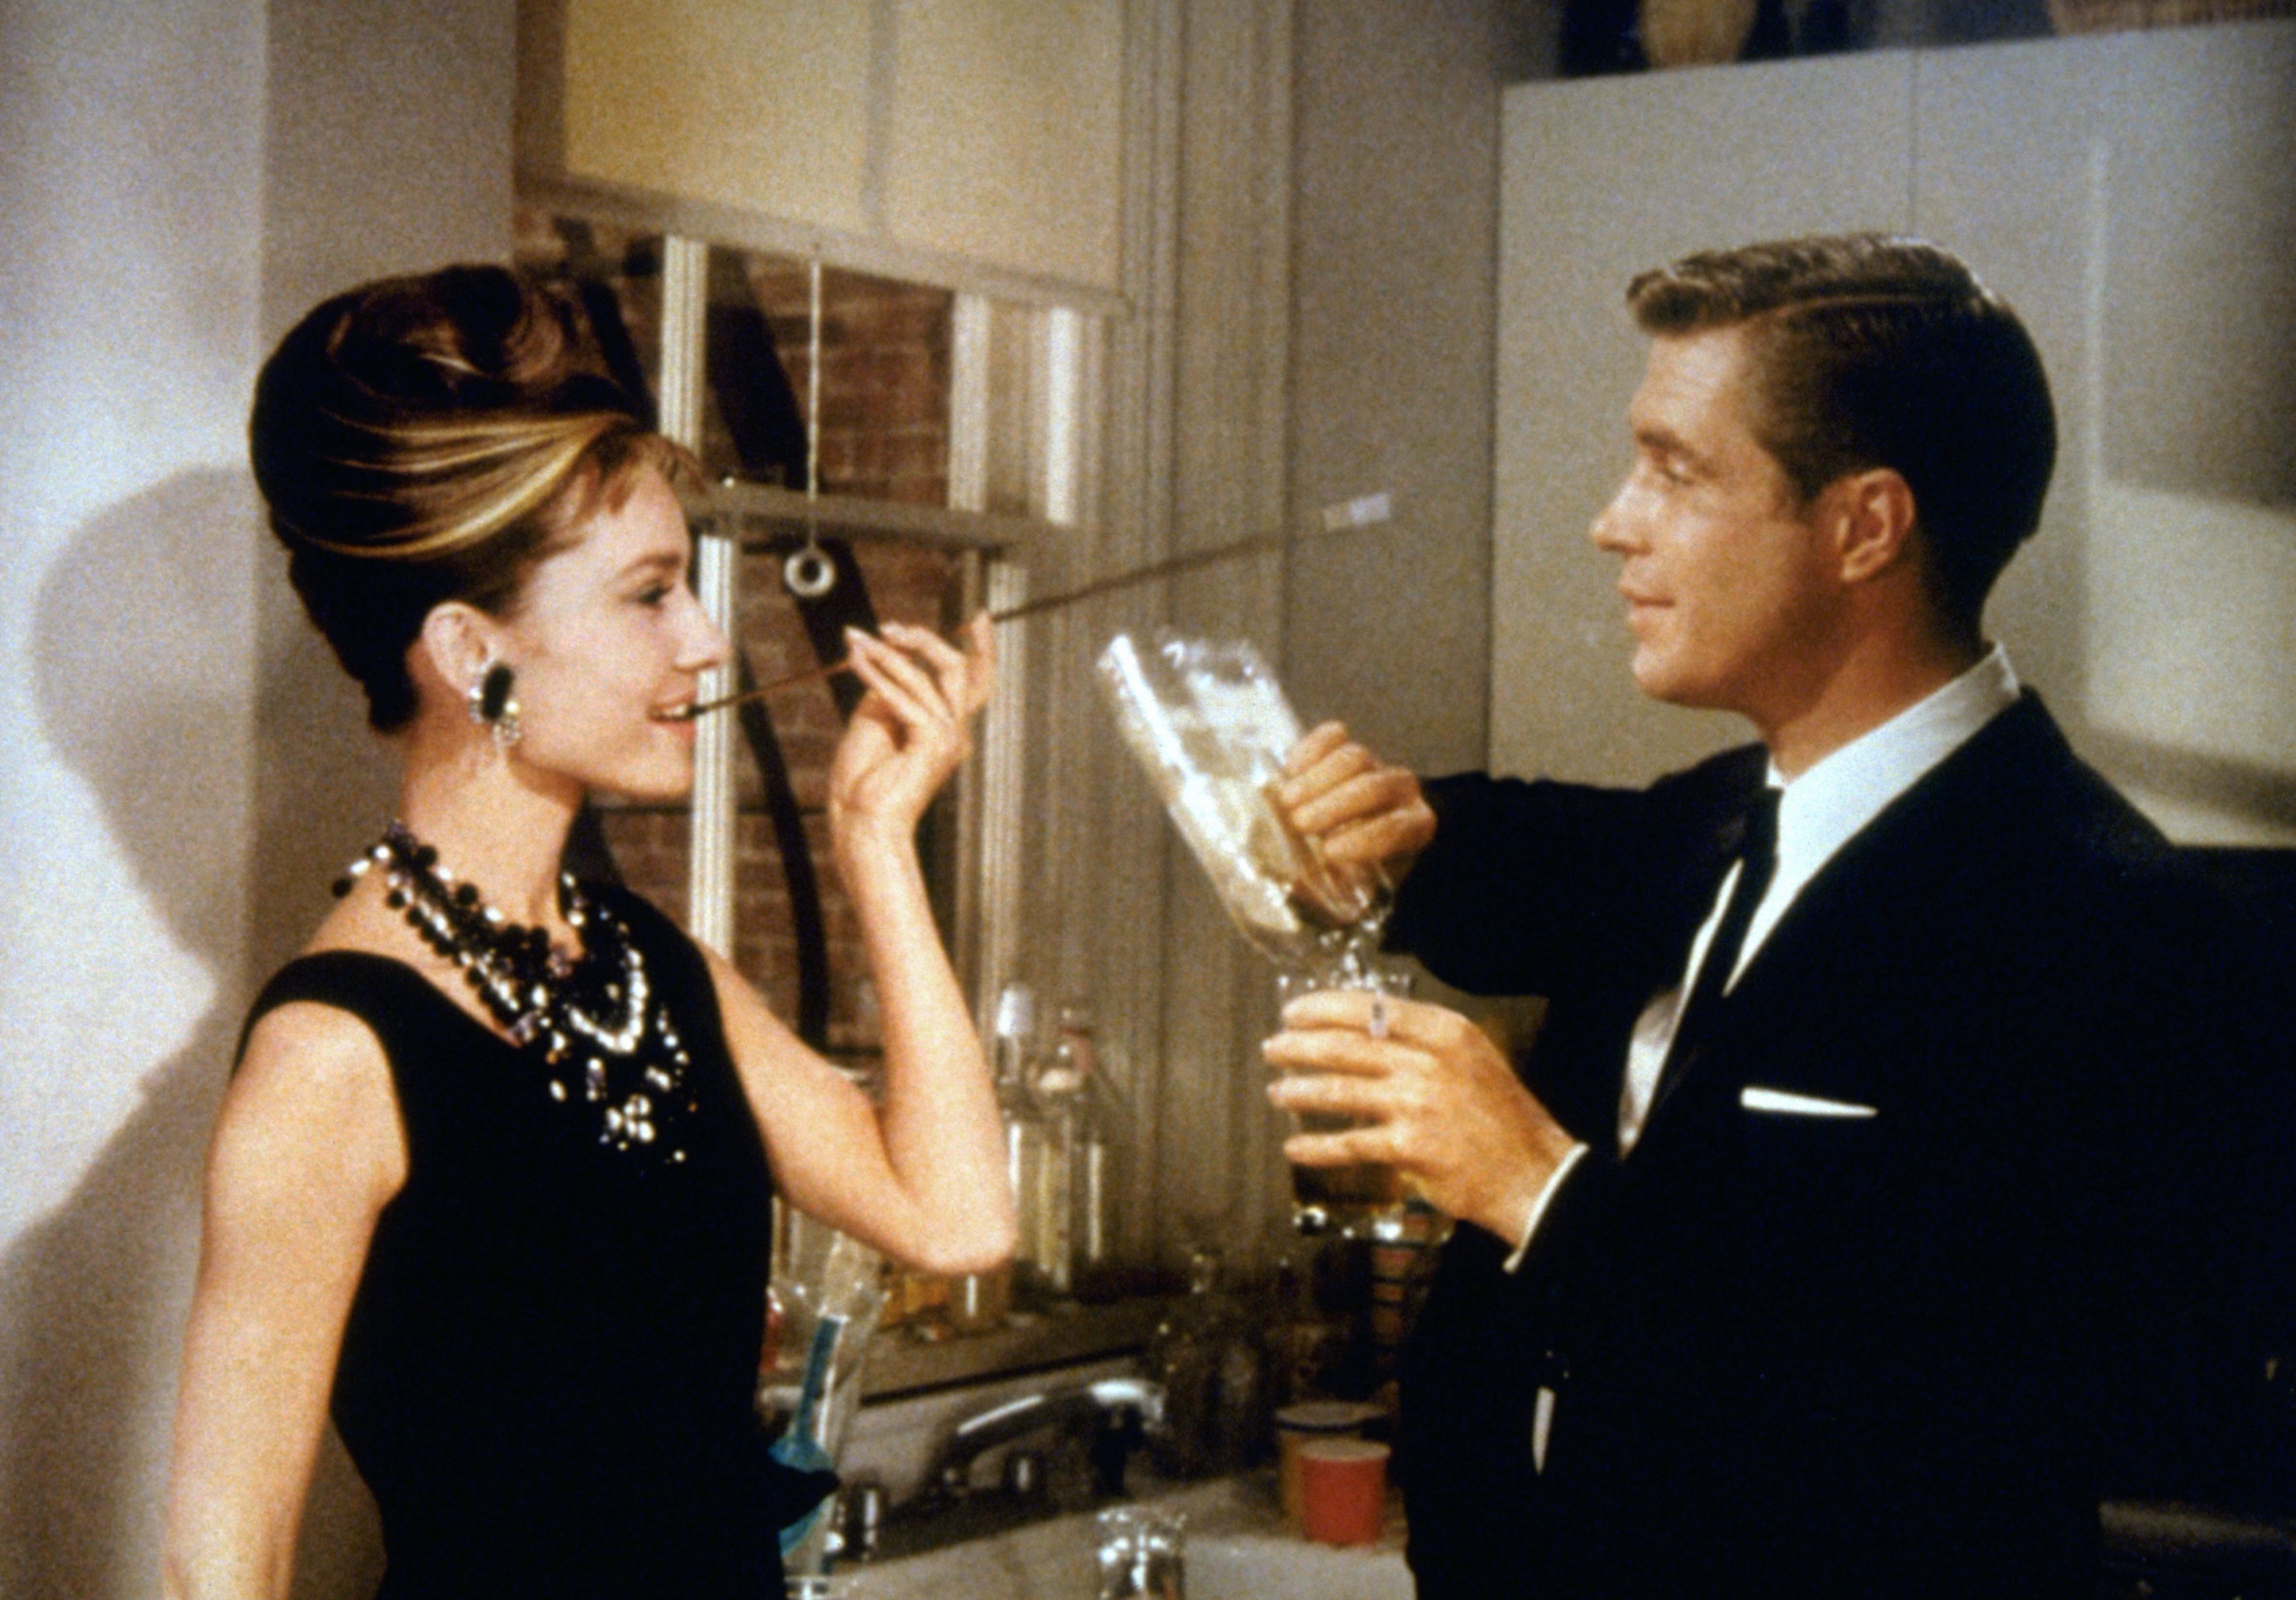 Paul and Holly enjoy a drink and a cigarette together